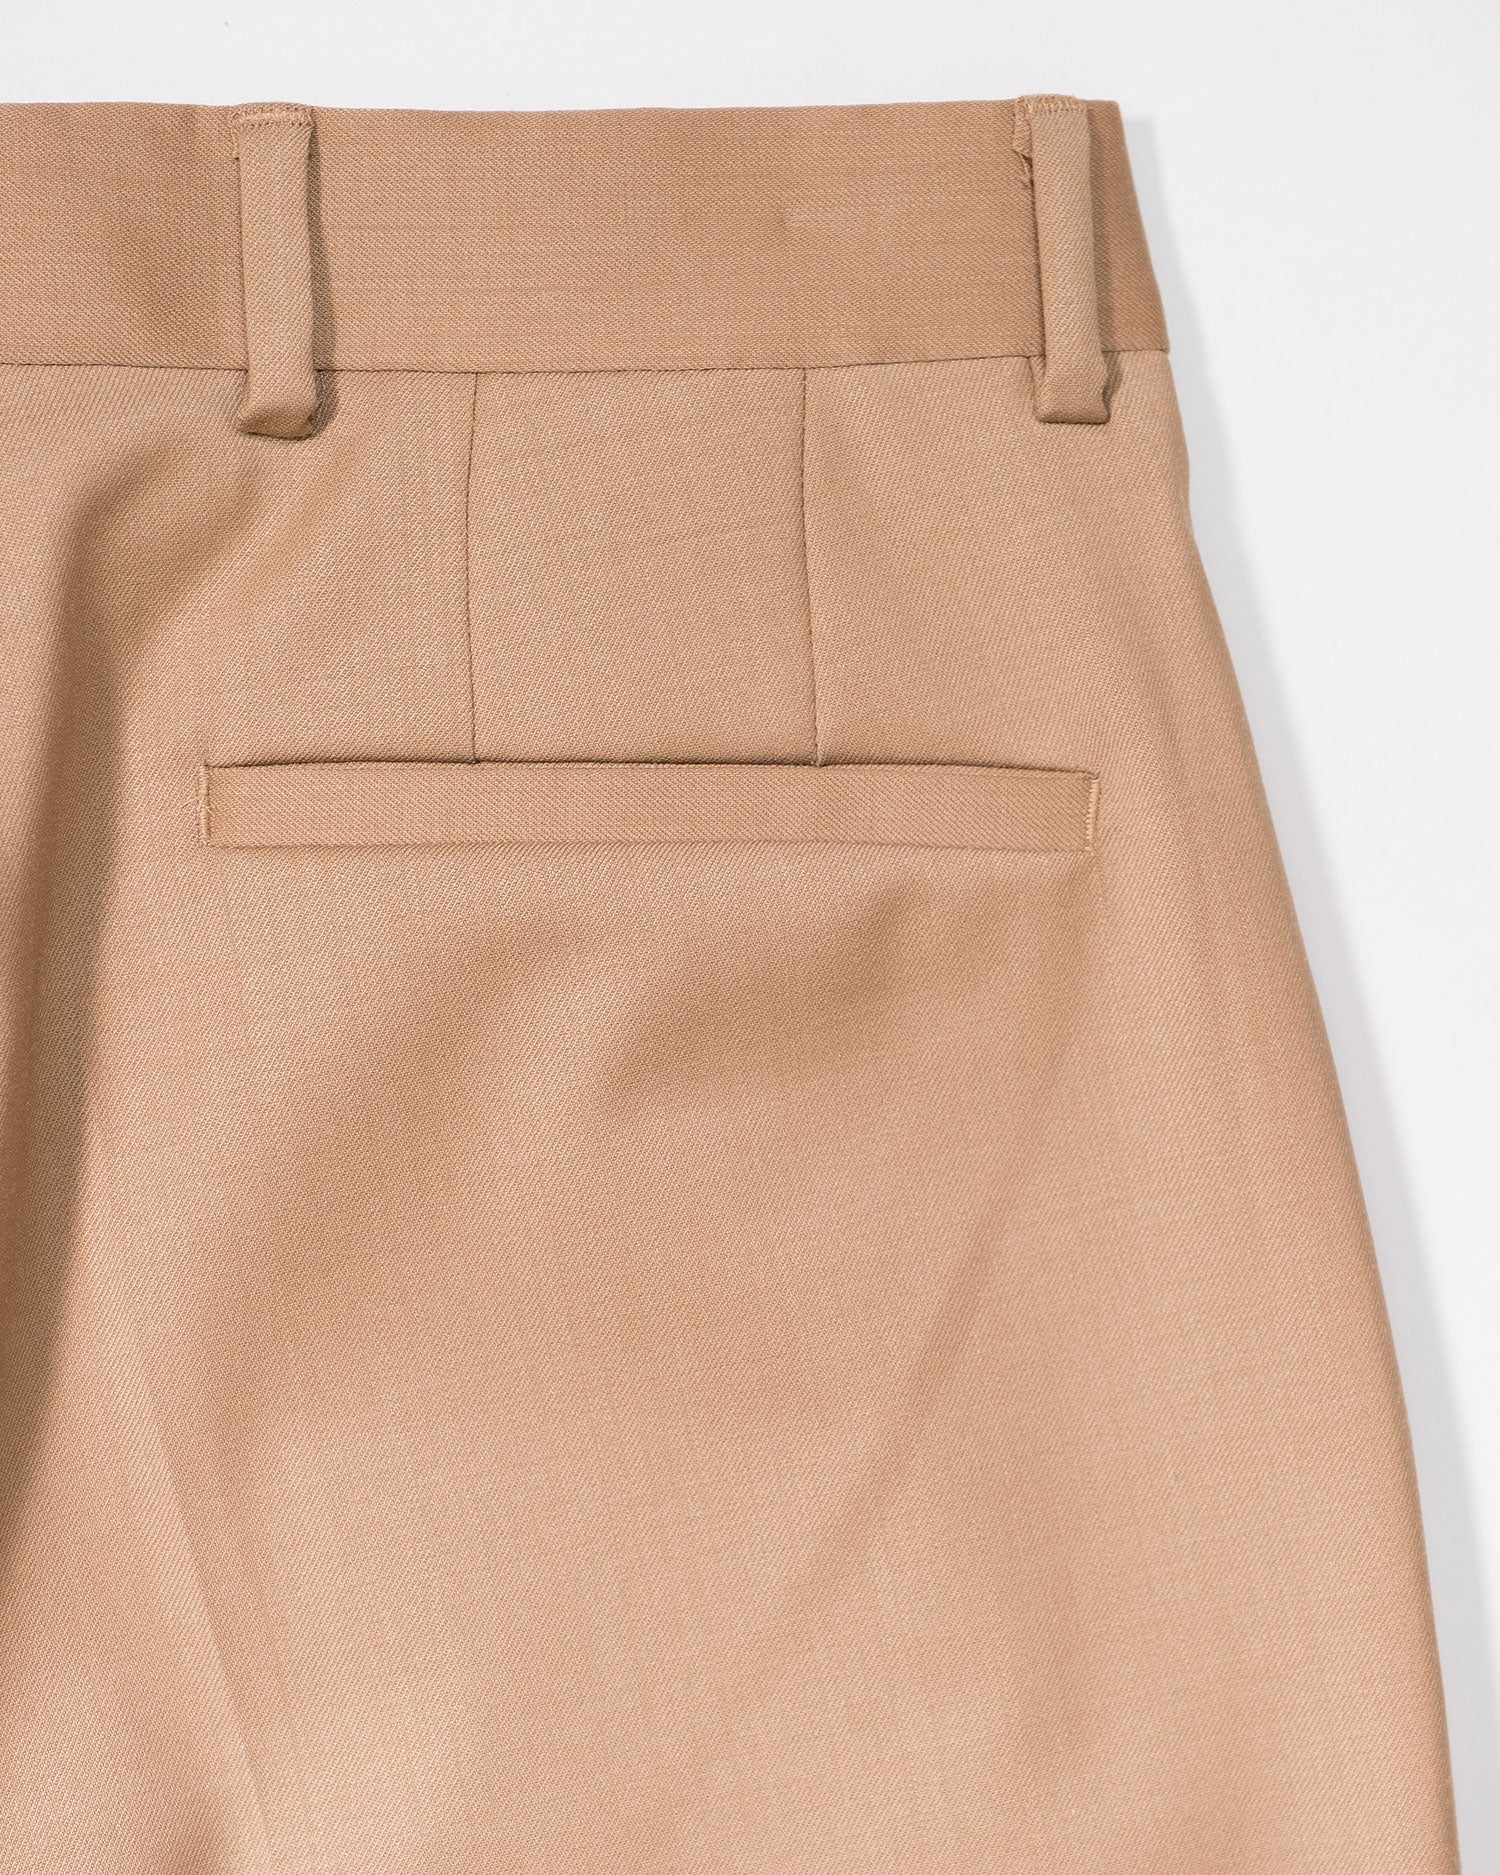 CMMN SWDN Jay Trousers Camel